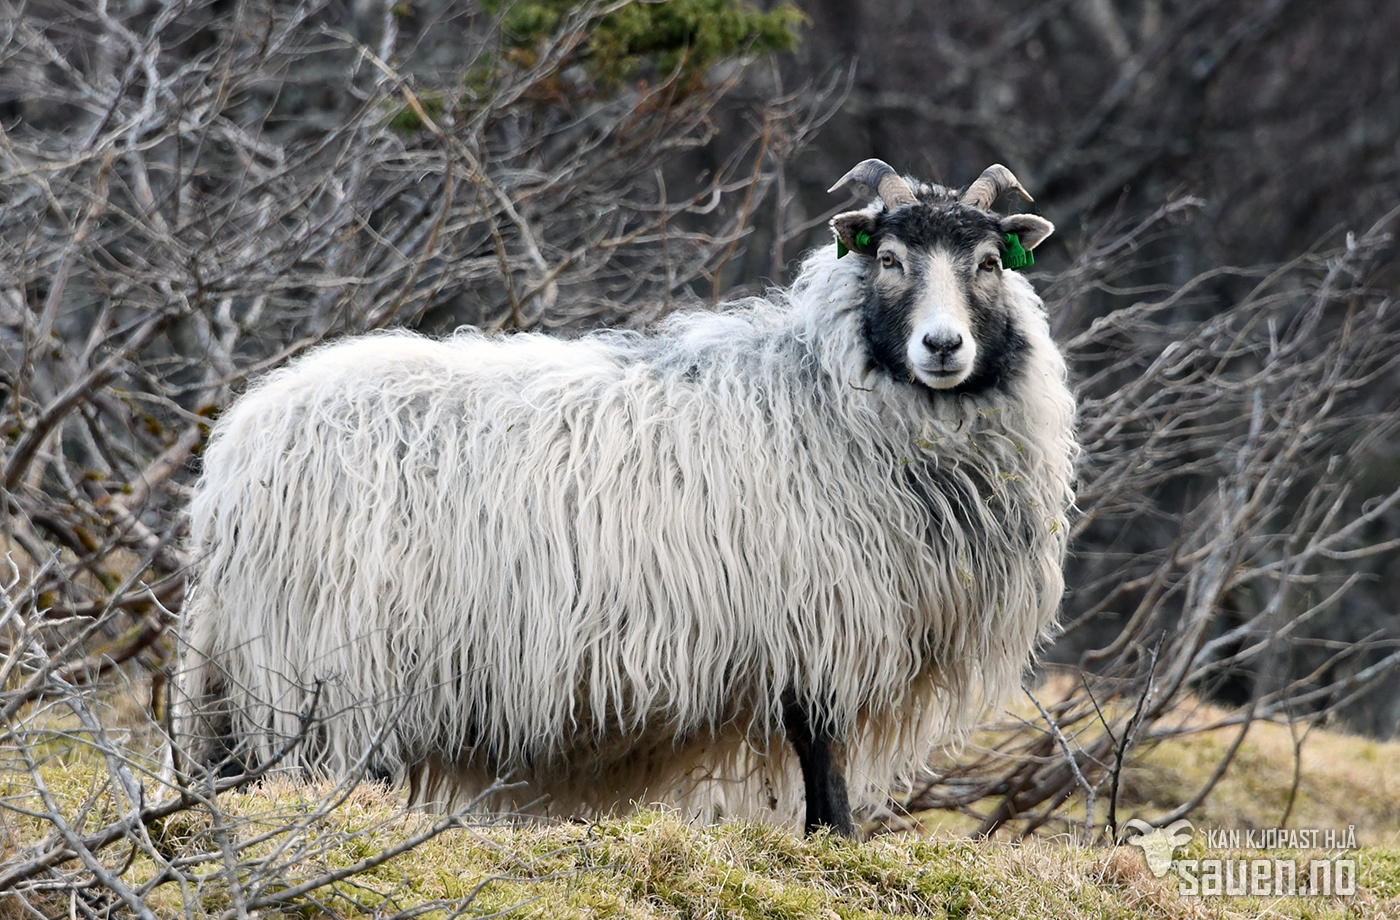 bilder av sau, sau, lerret, bilde av sau, gammalnorsk spælsau, sheep, photo of sheep, gammalnorsk spælsau